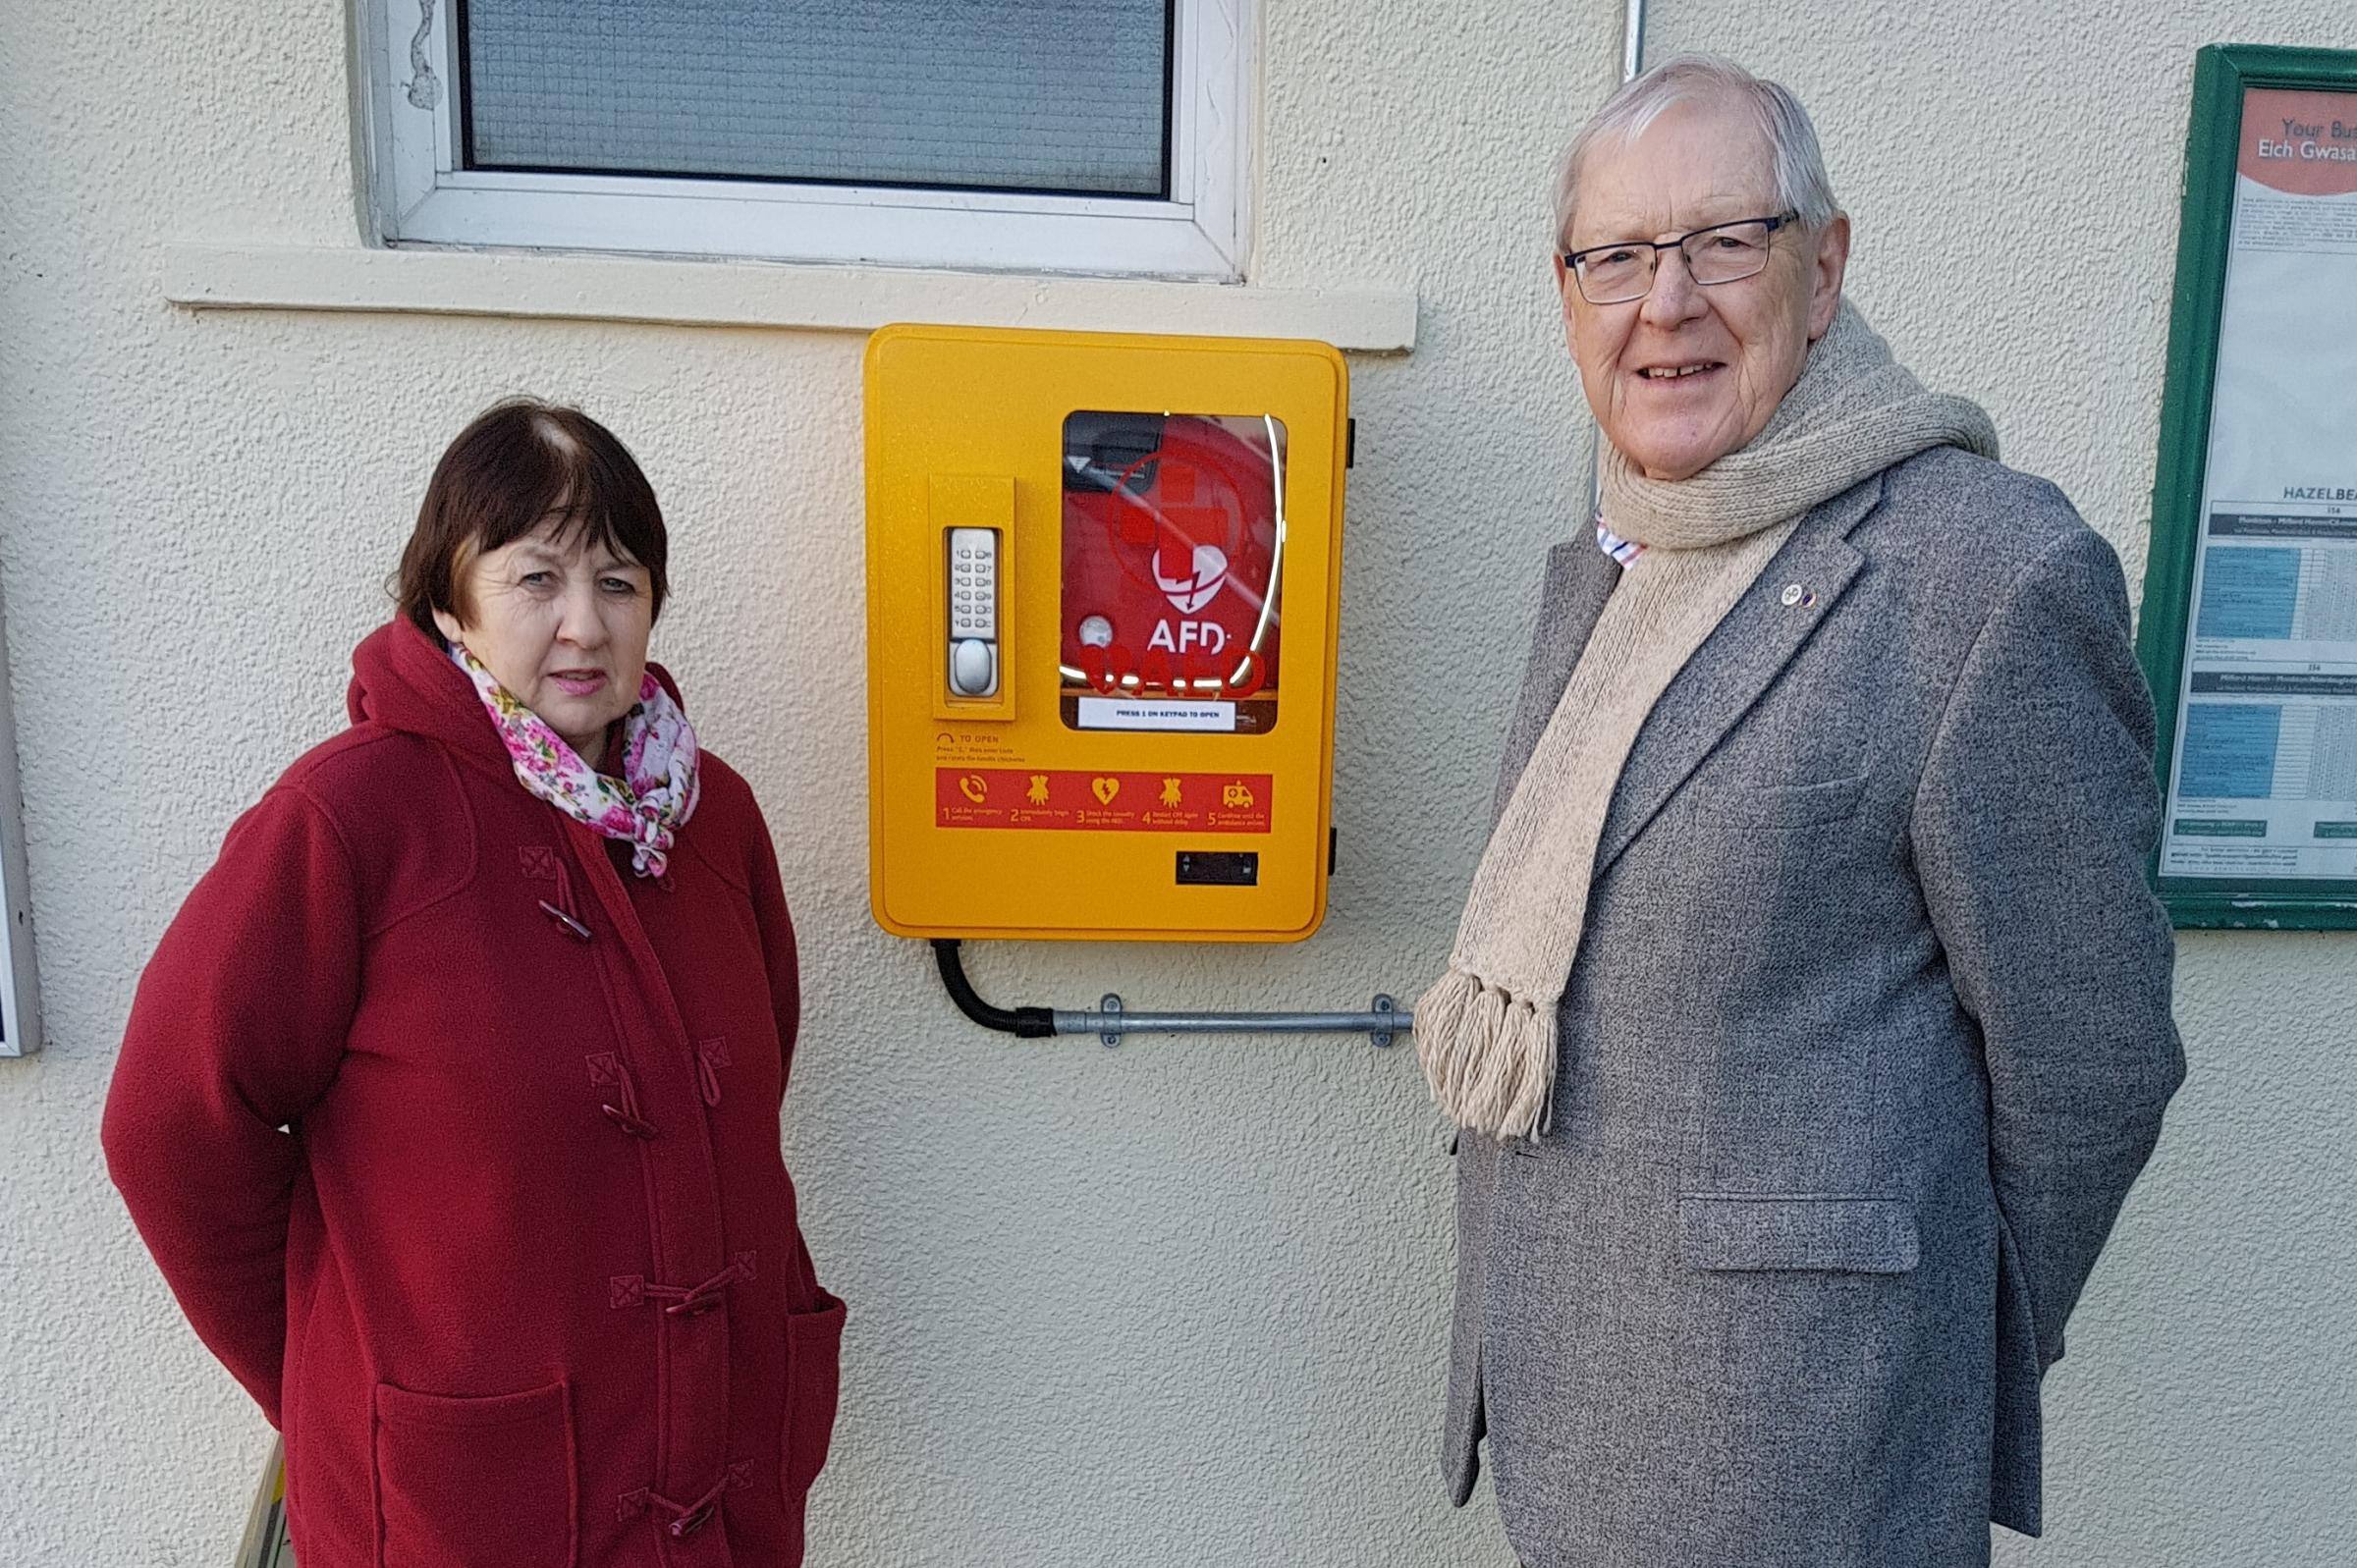 Pictured next to the defibrillator is Cllr Mike Howells (Chairman of LCC) and Cllr Mrs Judith Wilson.